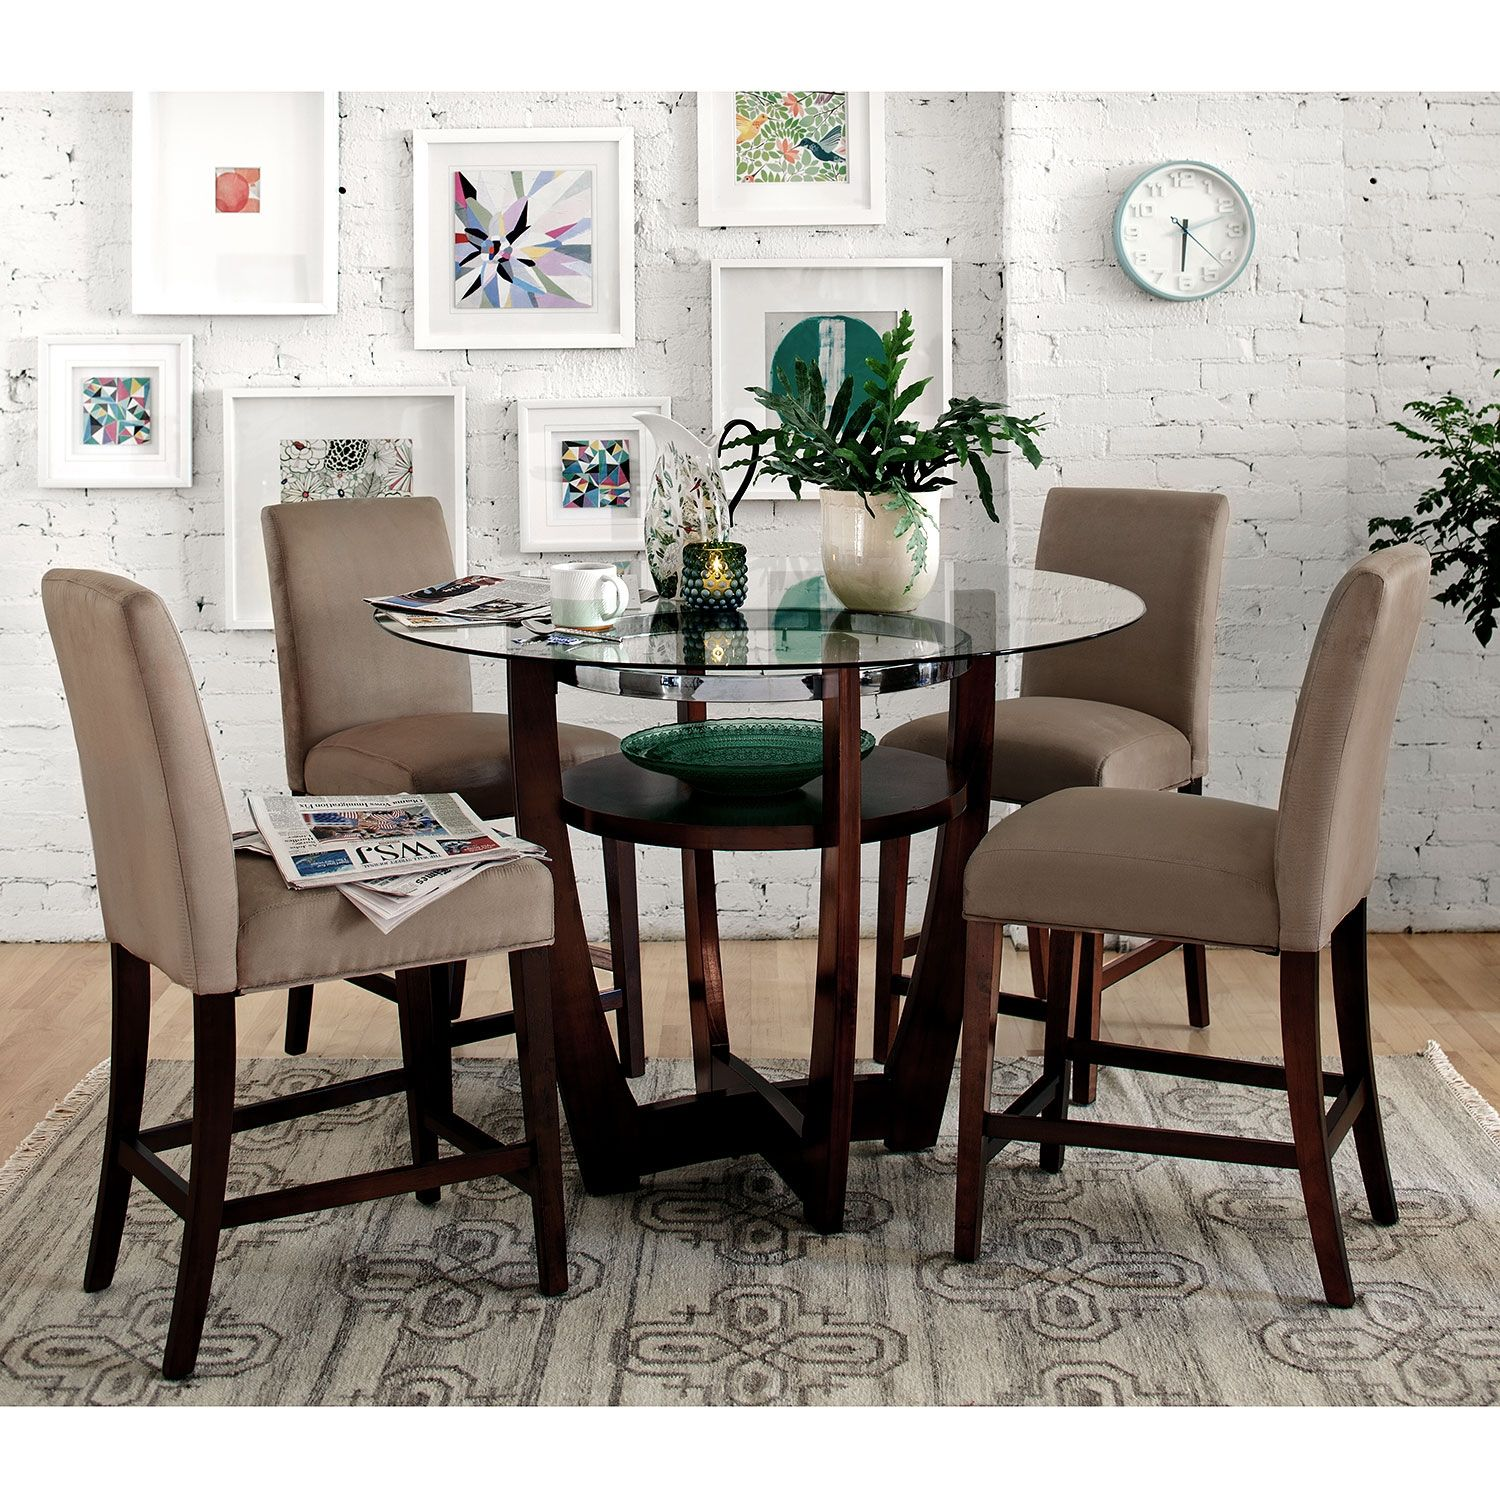 alcove ii counter height table value city furniture for the home rh pinterest ca